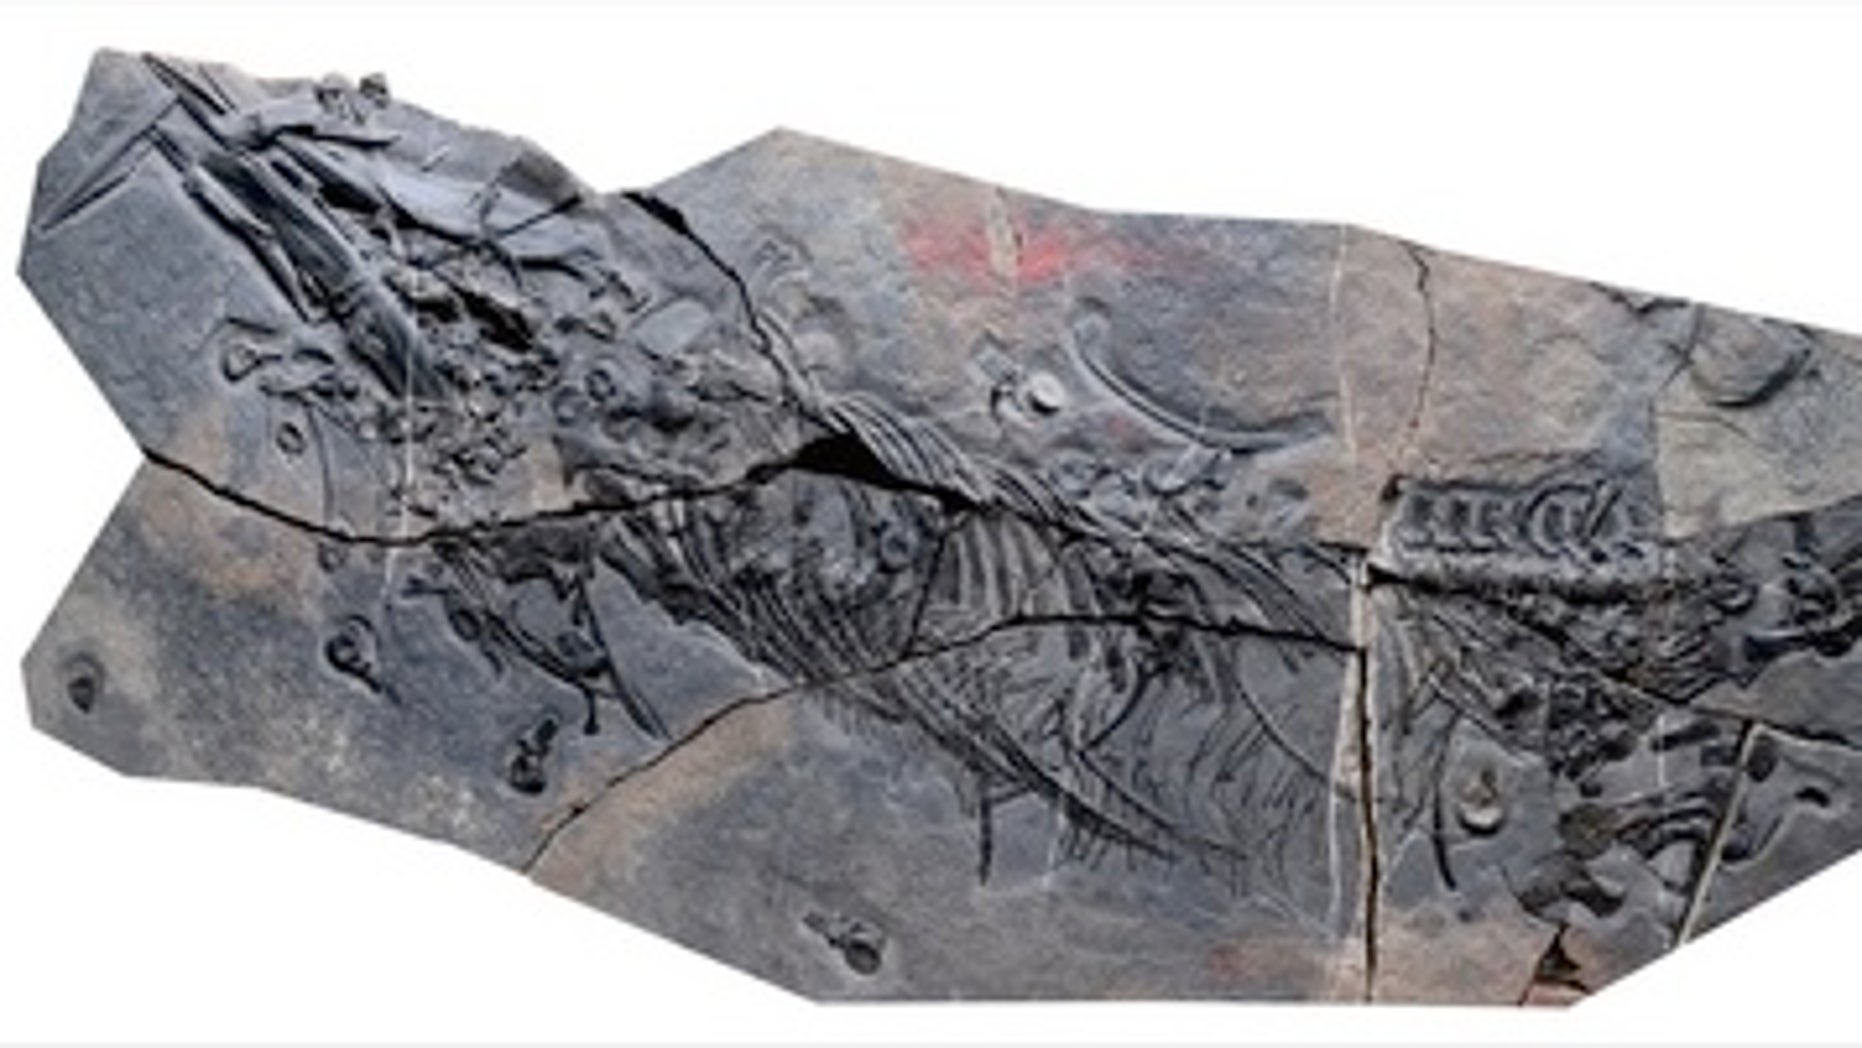 The newly identified species of thalattosaur discovered in China is almost 7 feet long (2.1 meters).